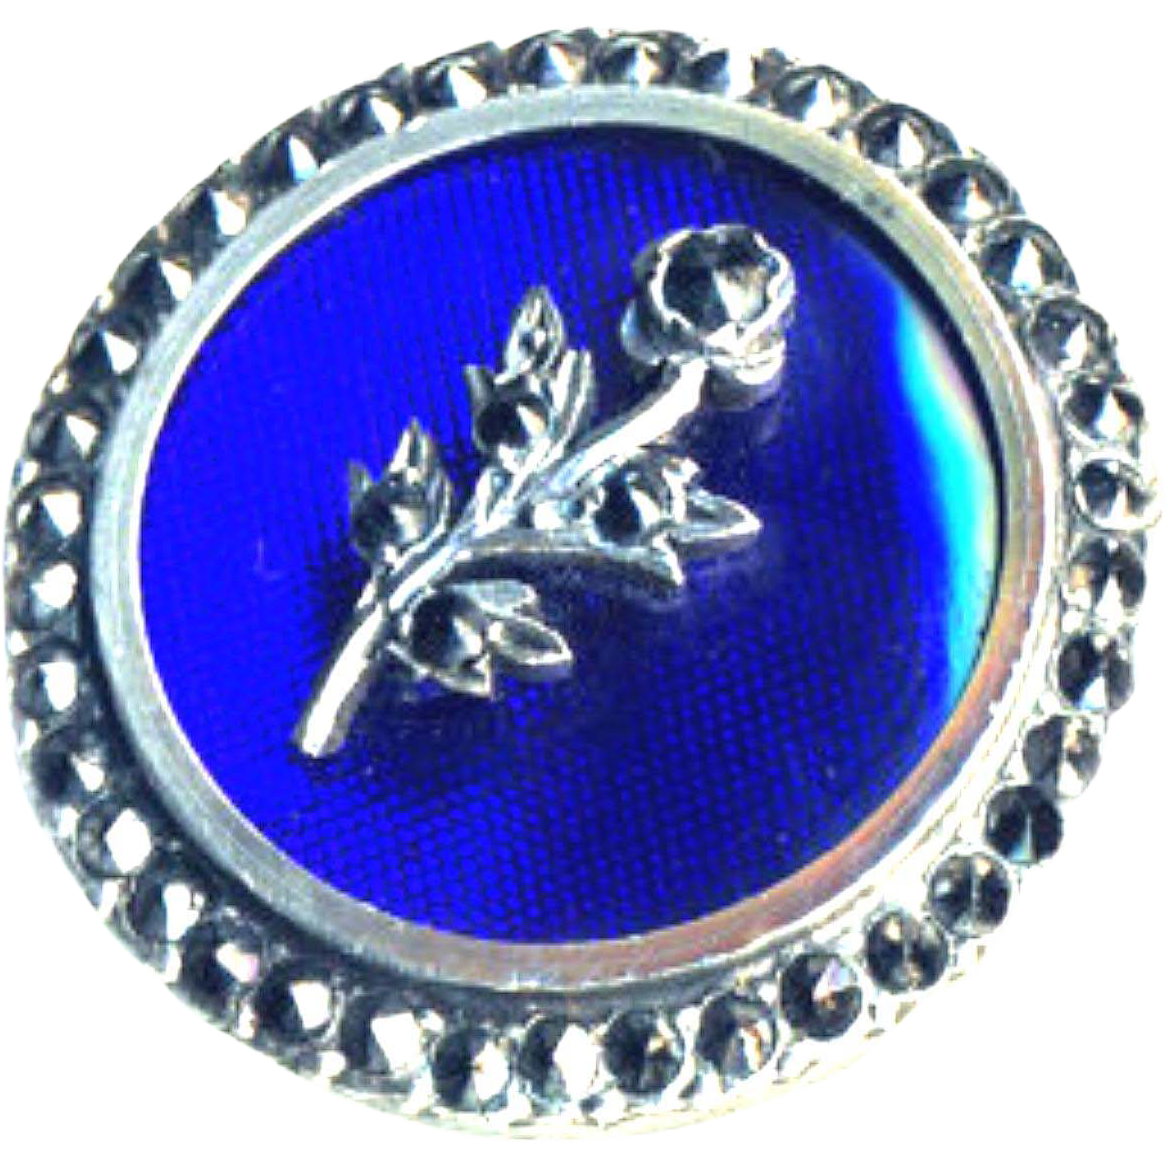 Button ~ Rare Very Fine Late Georgian Bleu de Roi Glass in Silver with True Marcasite Embellishment and Border